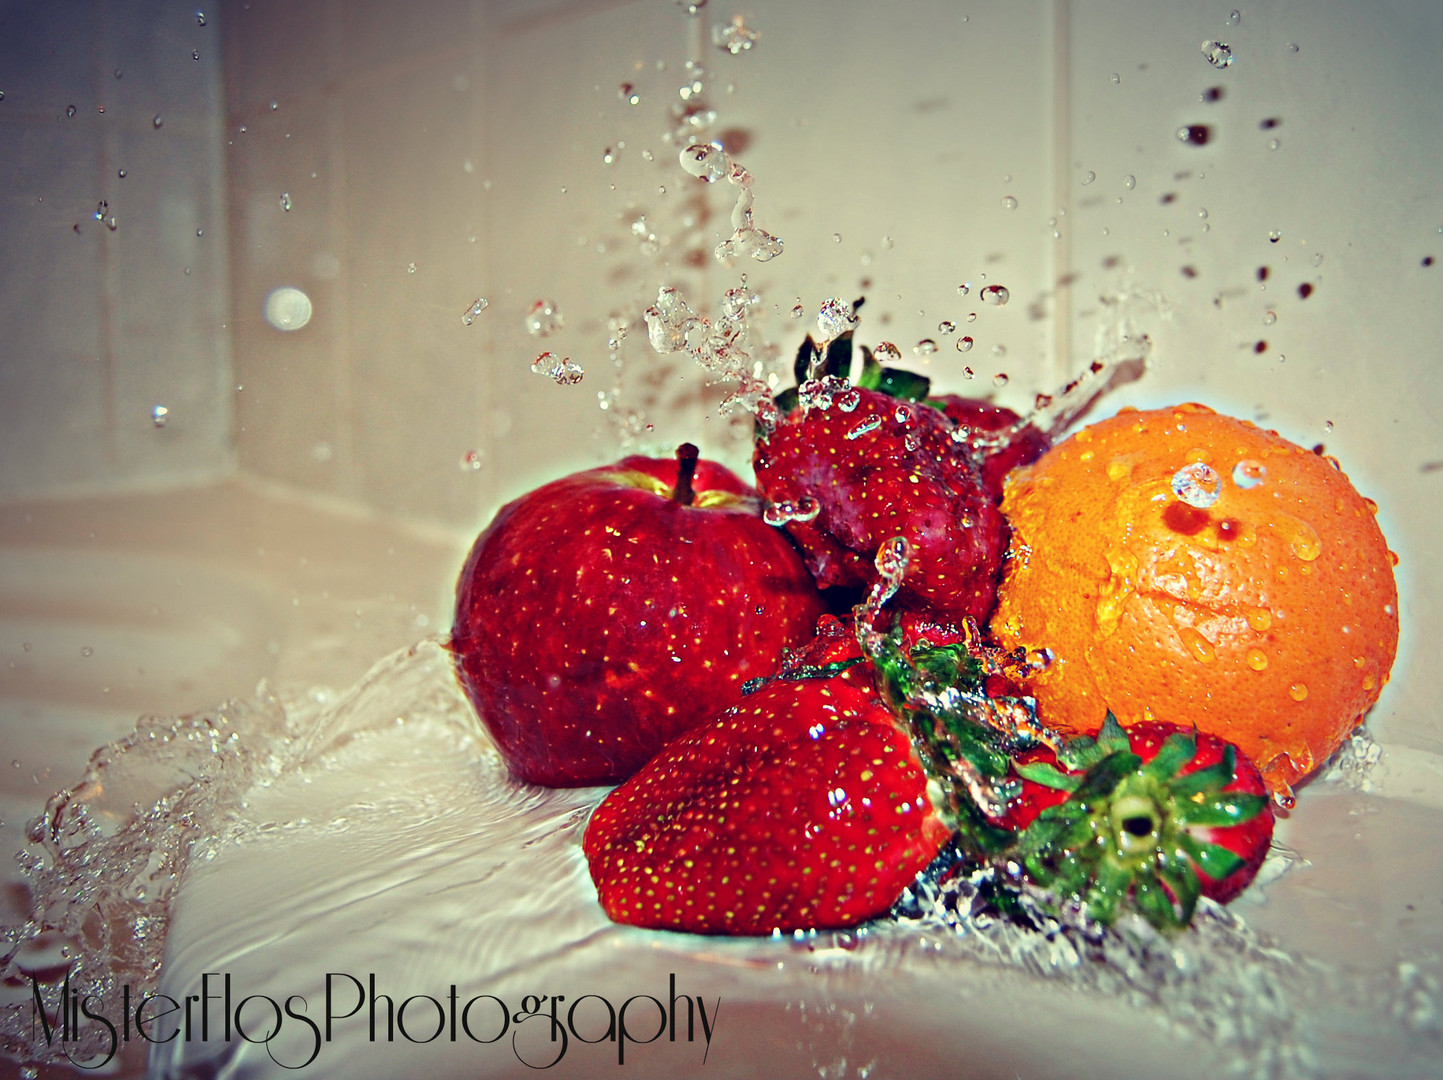 Obst °°